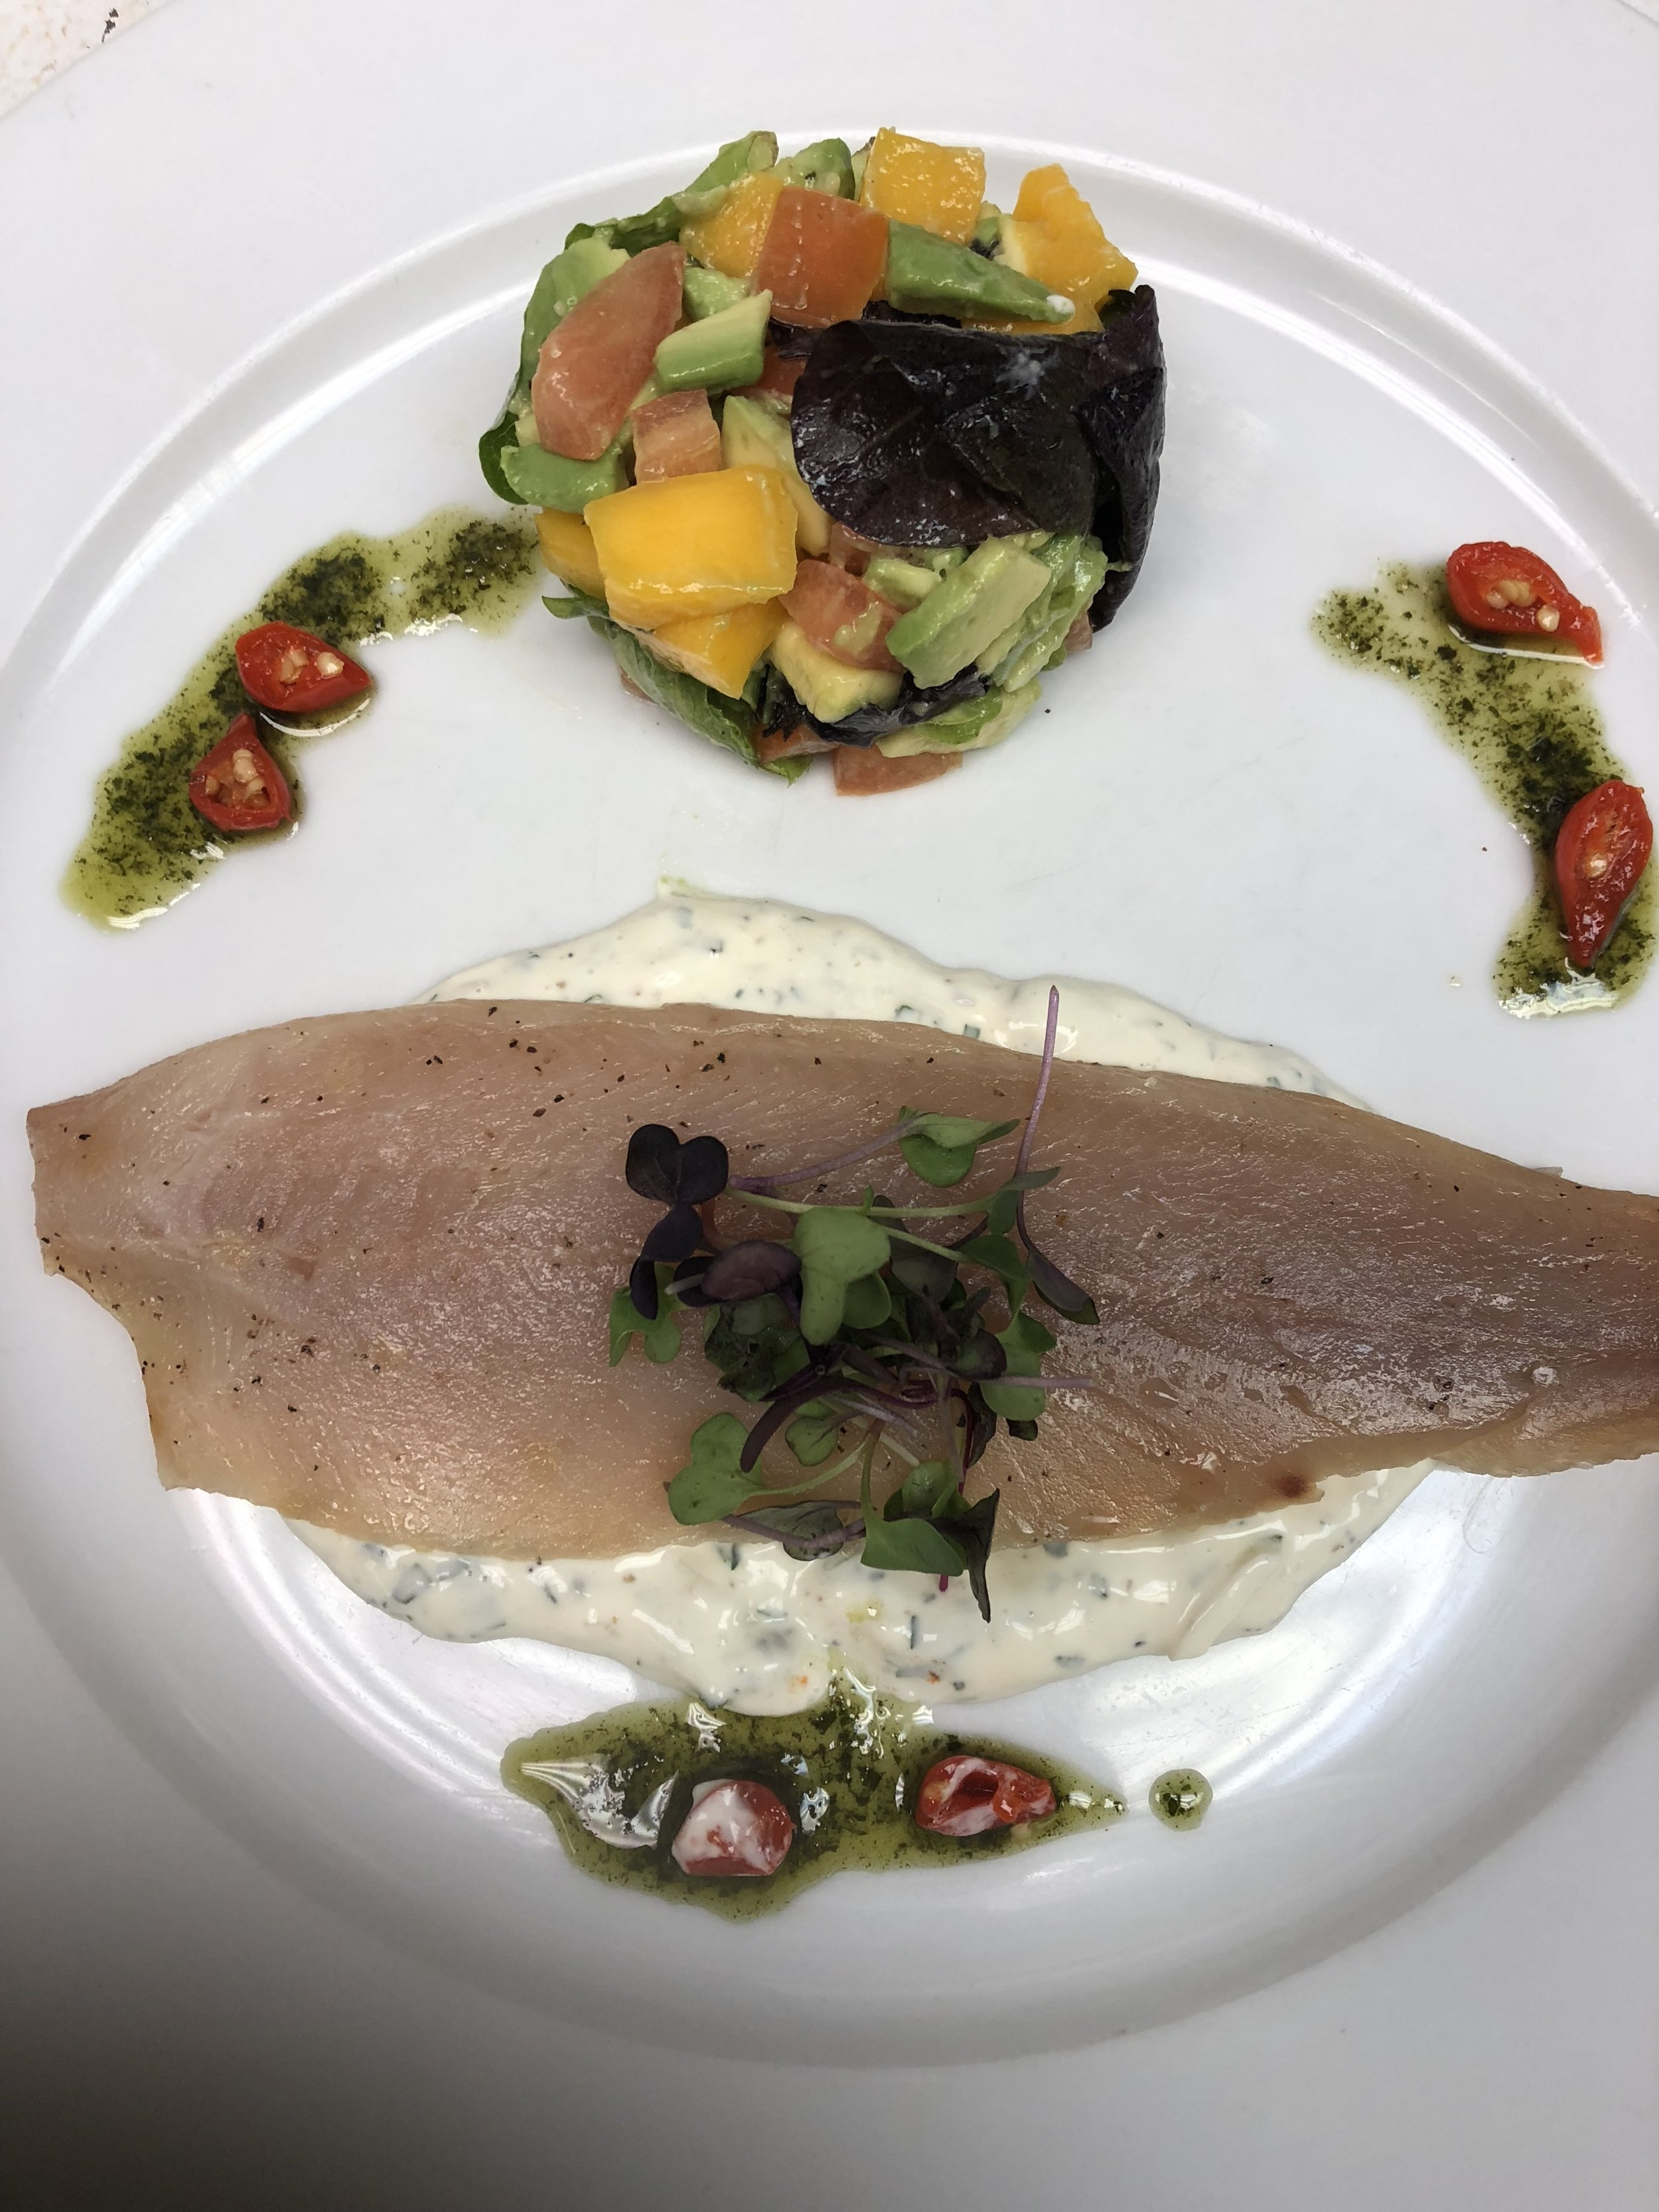 Smoked trout with avocado mango salad and tartar sauce.